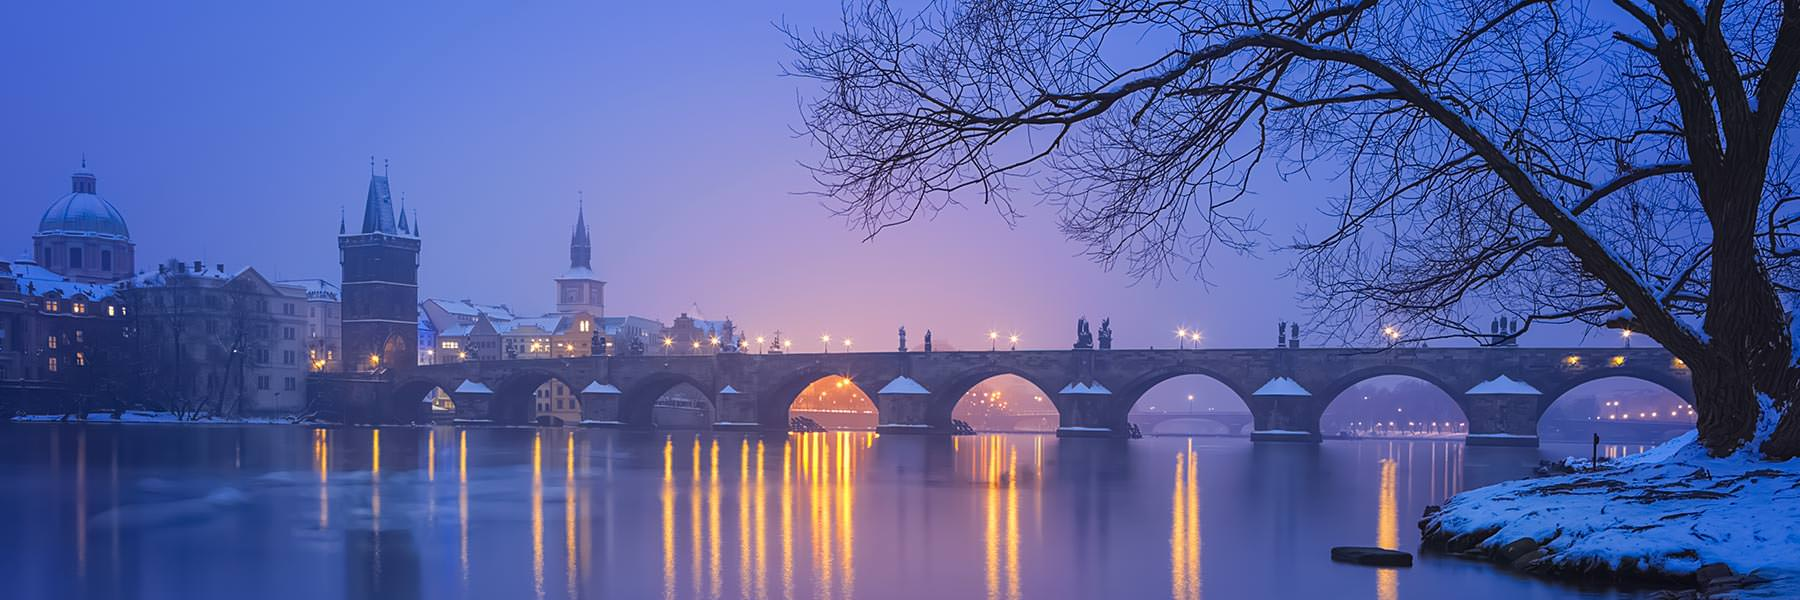 Charles Bridge in Prague at Night, Czech Republic